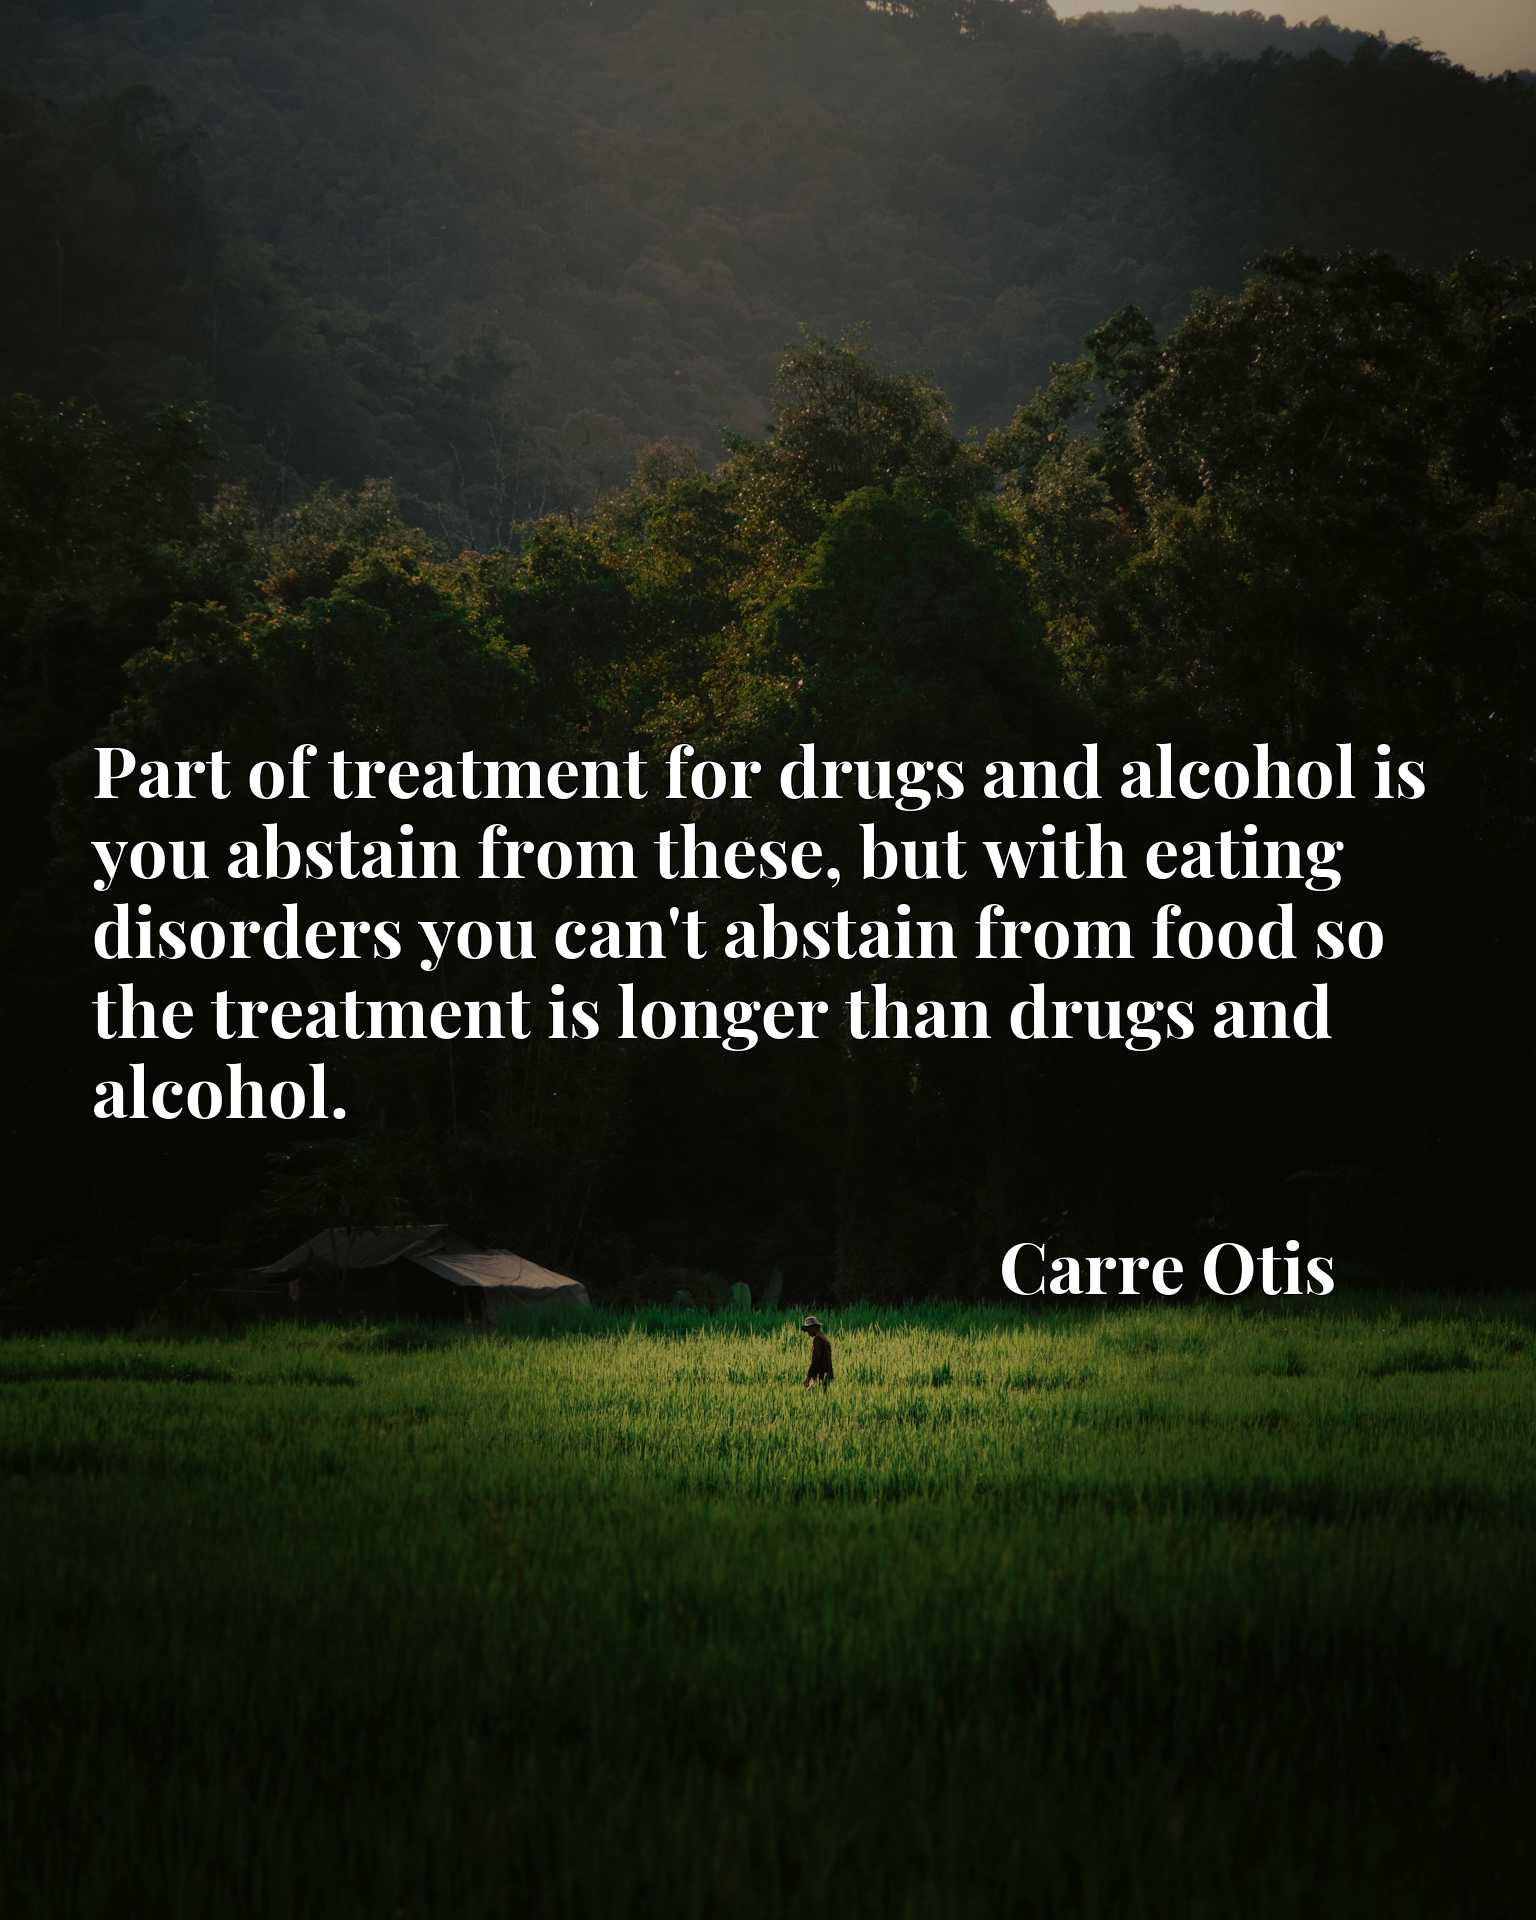 Part of treatment for drugs and alcohol is you abstain from these, but with eating disorders you can't abstain from food so the treatment is longer than drugs and alcohol.